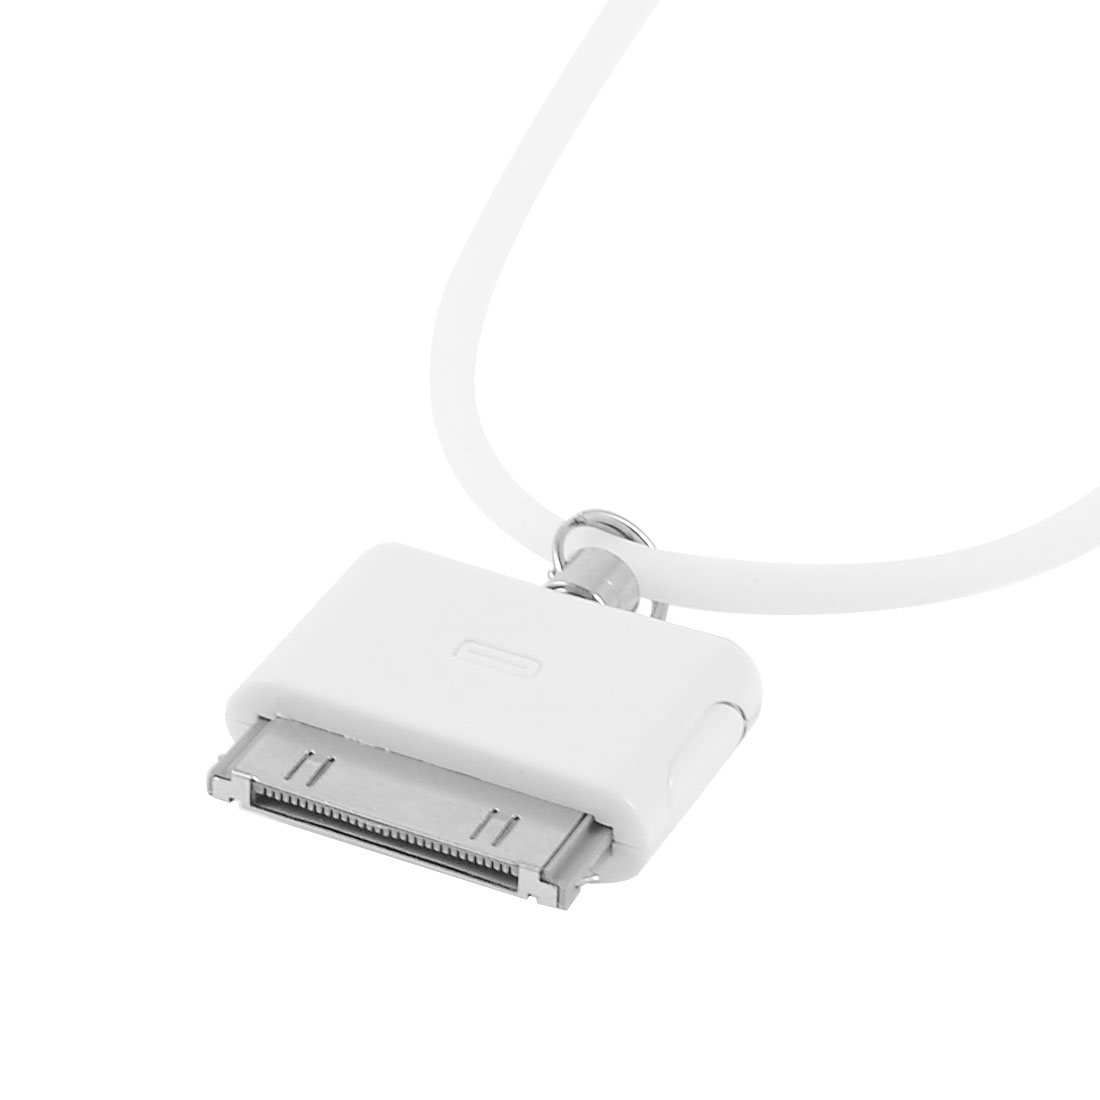 "White Decorative 30pin Connector Pendant 32.3"" Silicone Strap for iPhone 4 4G"